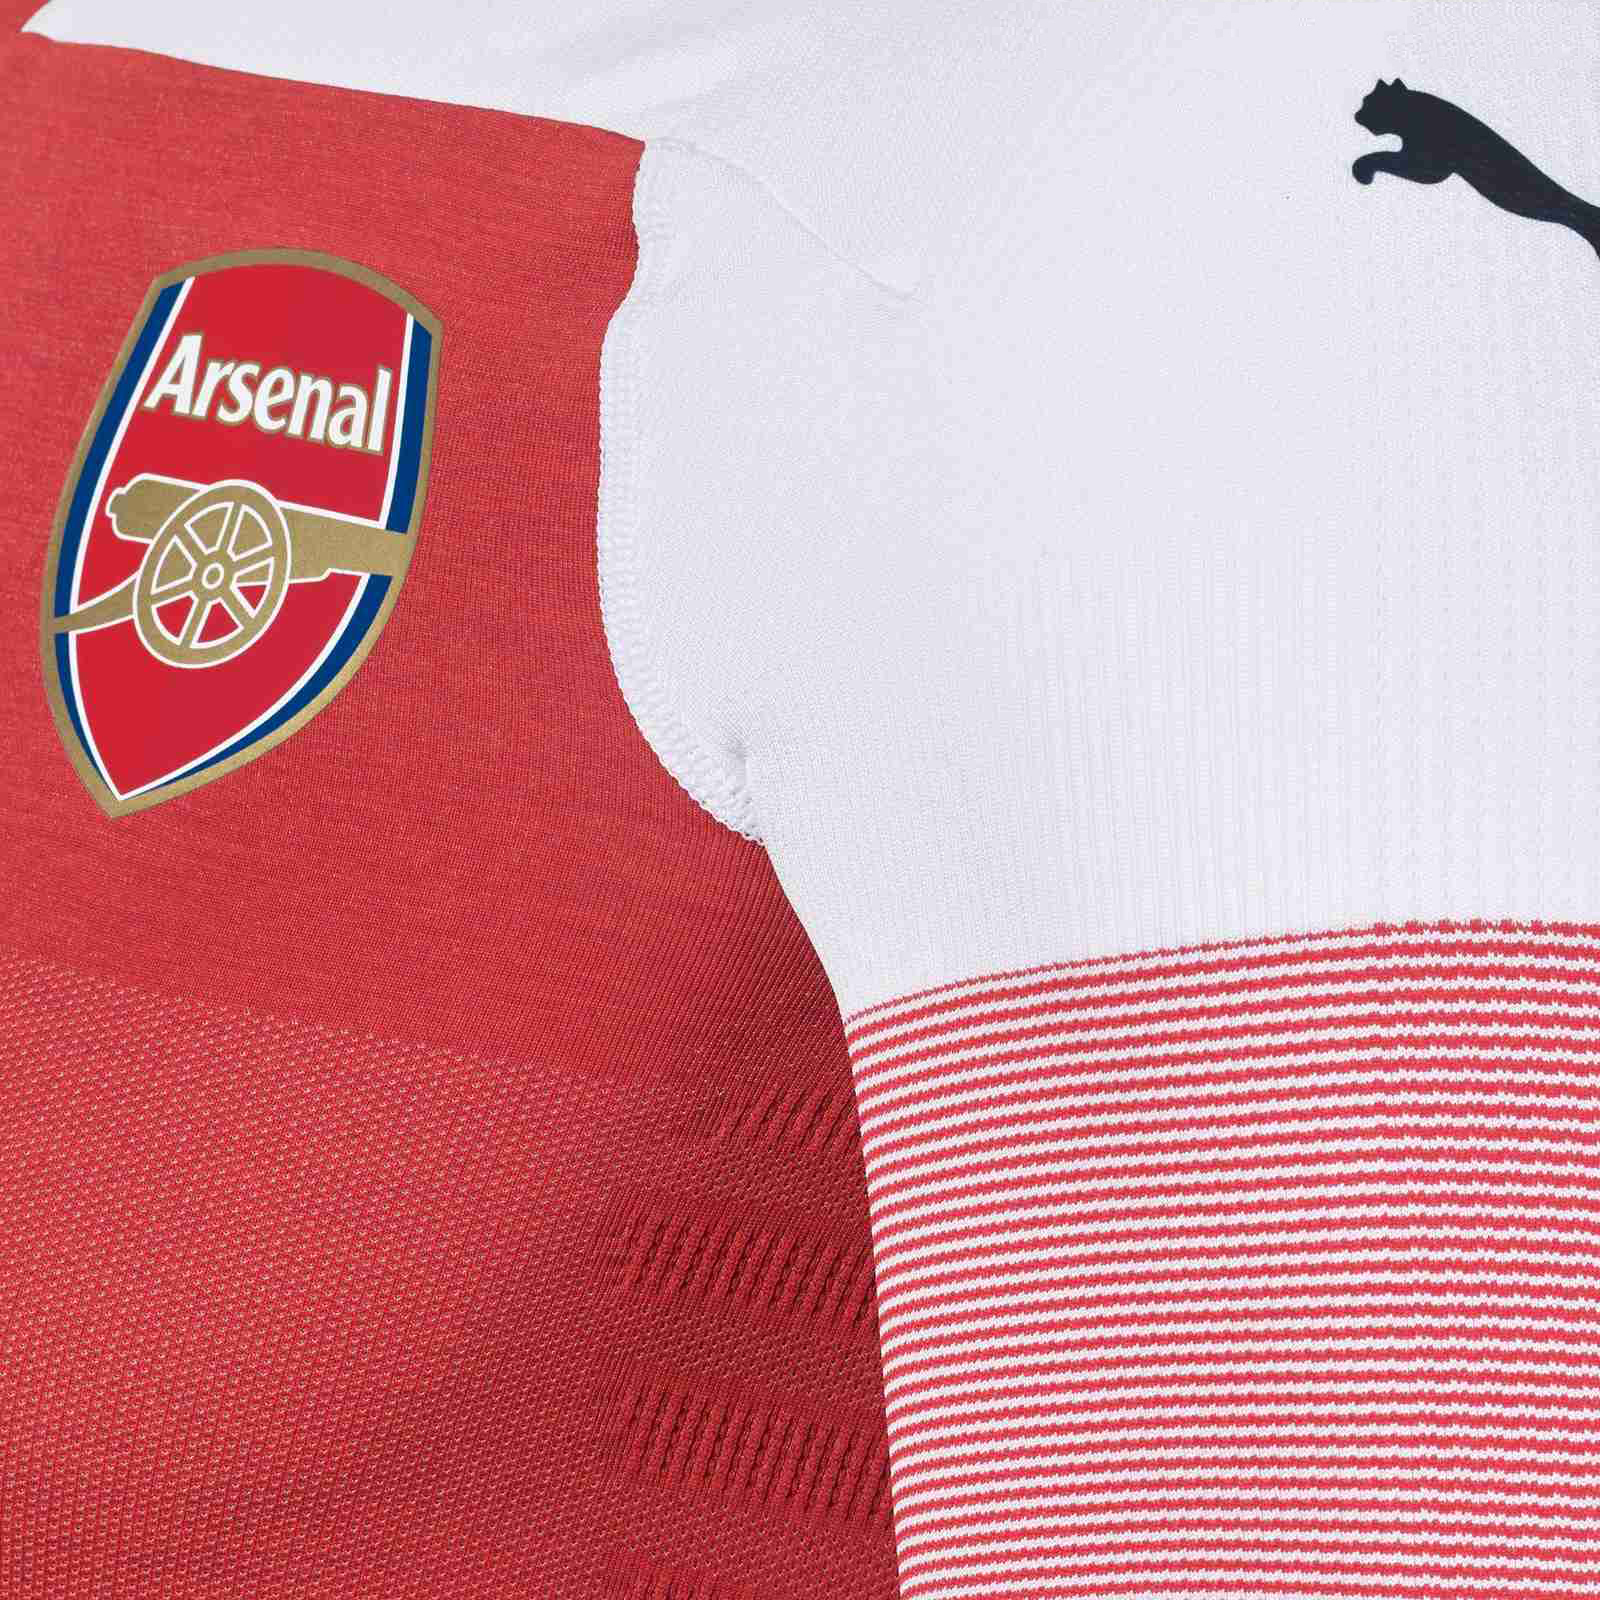 264e7e2bb430 Not only the sleeves of the new Arsenal home jersey are white but also the  shoulders, creating a new look that wasn t appreciated by most fans when it  was ...